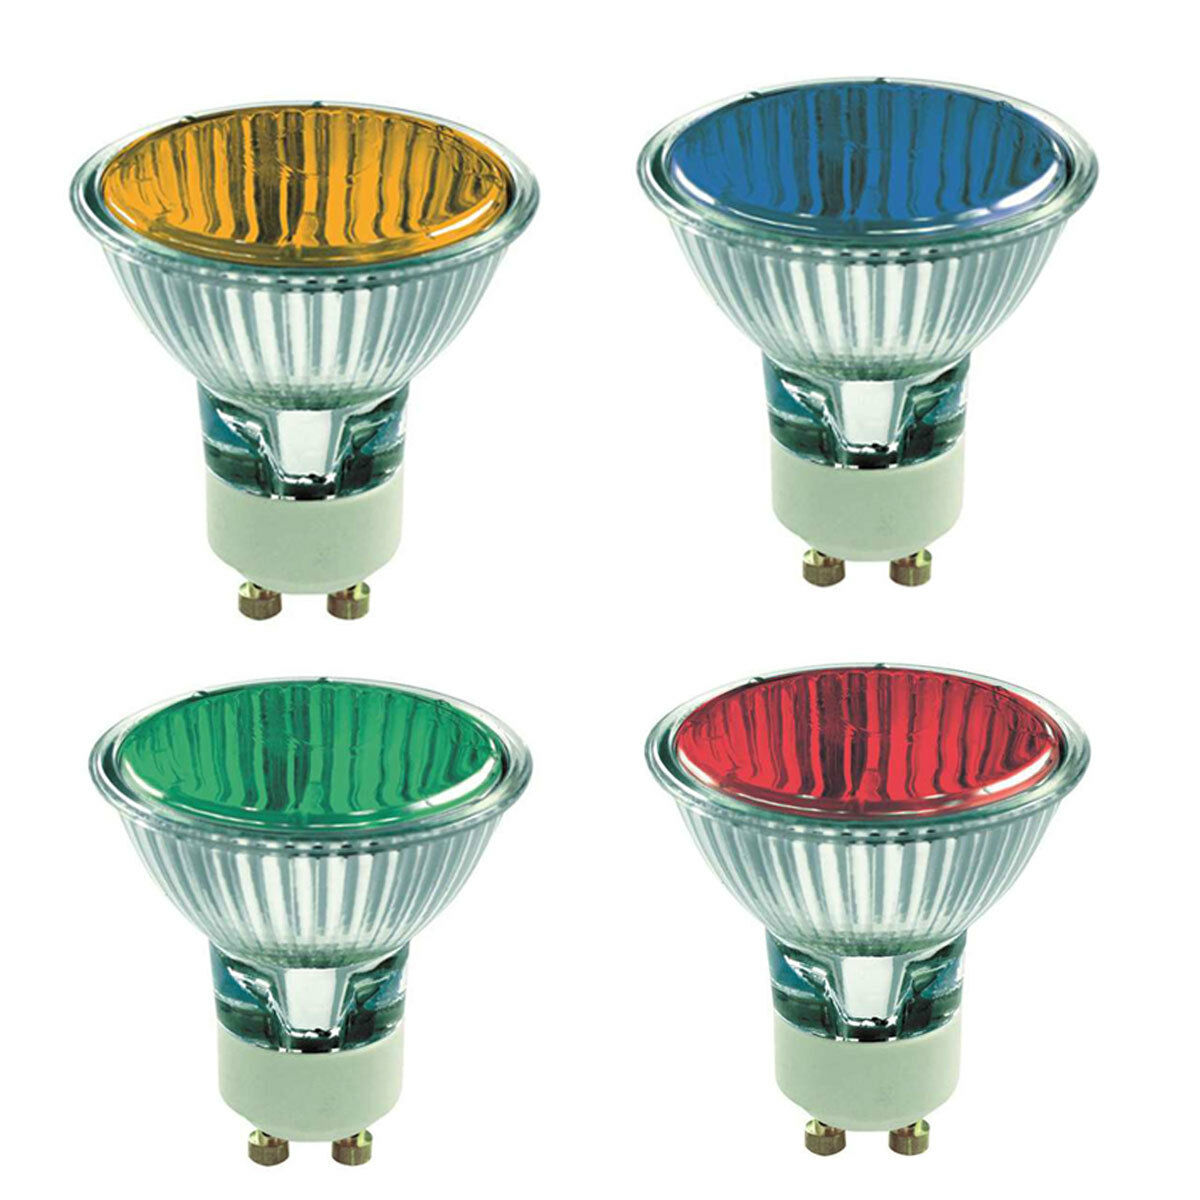 Coloured GU10 50w Halogen Light Bulbs RED, GREEN, BLUE ...